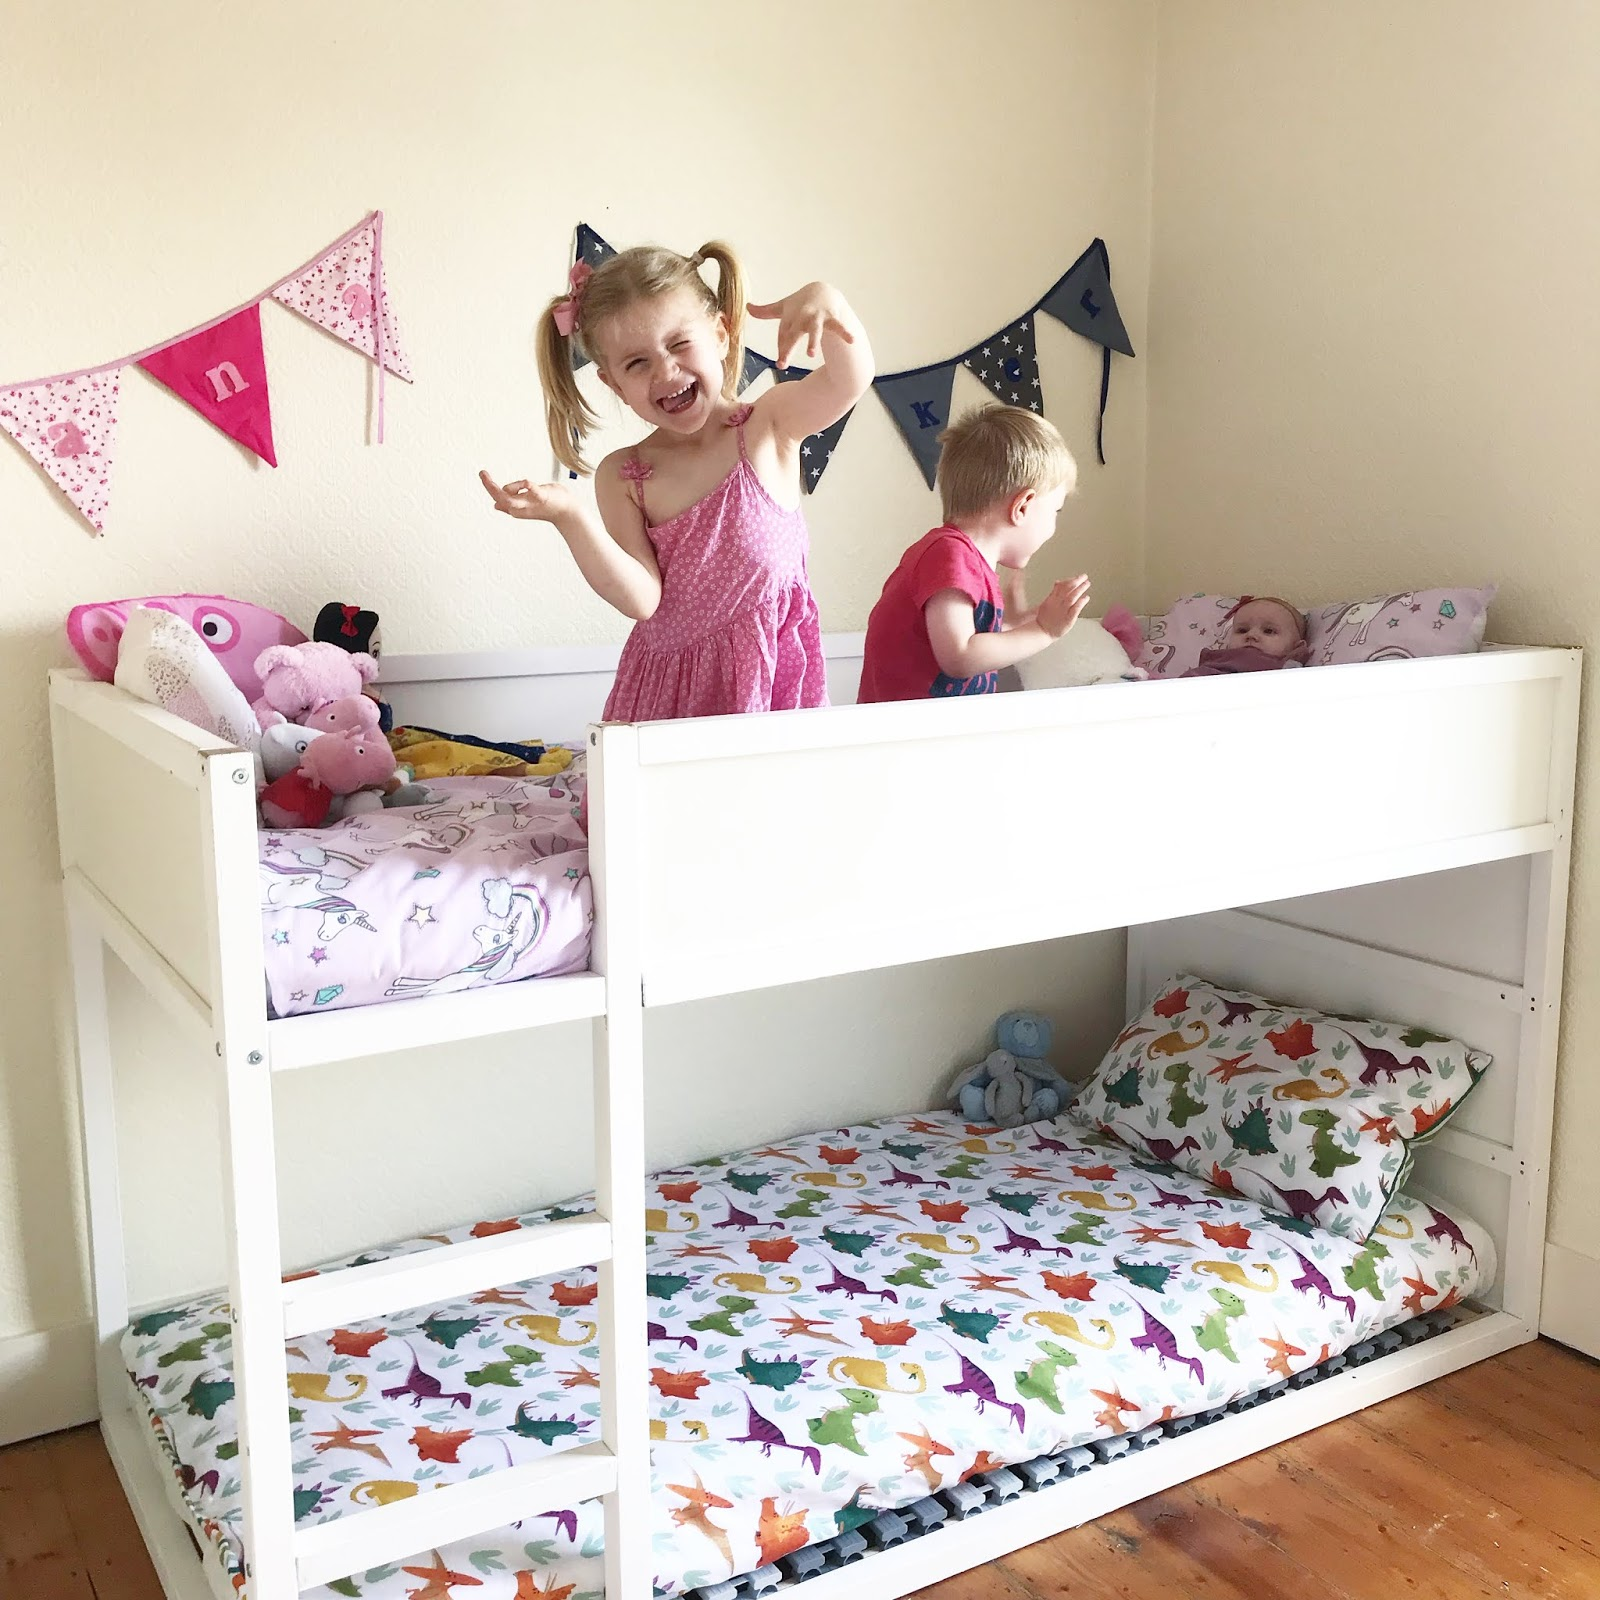 simple ikea kura bunk bed hack | the perfect bunk beds for under 5s